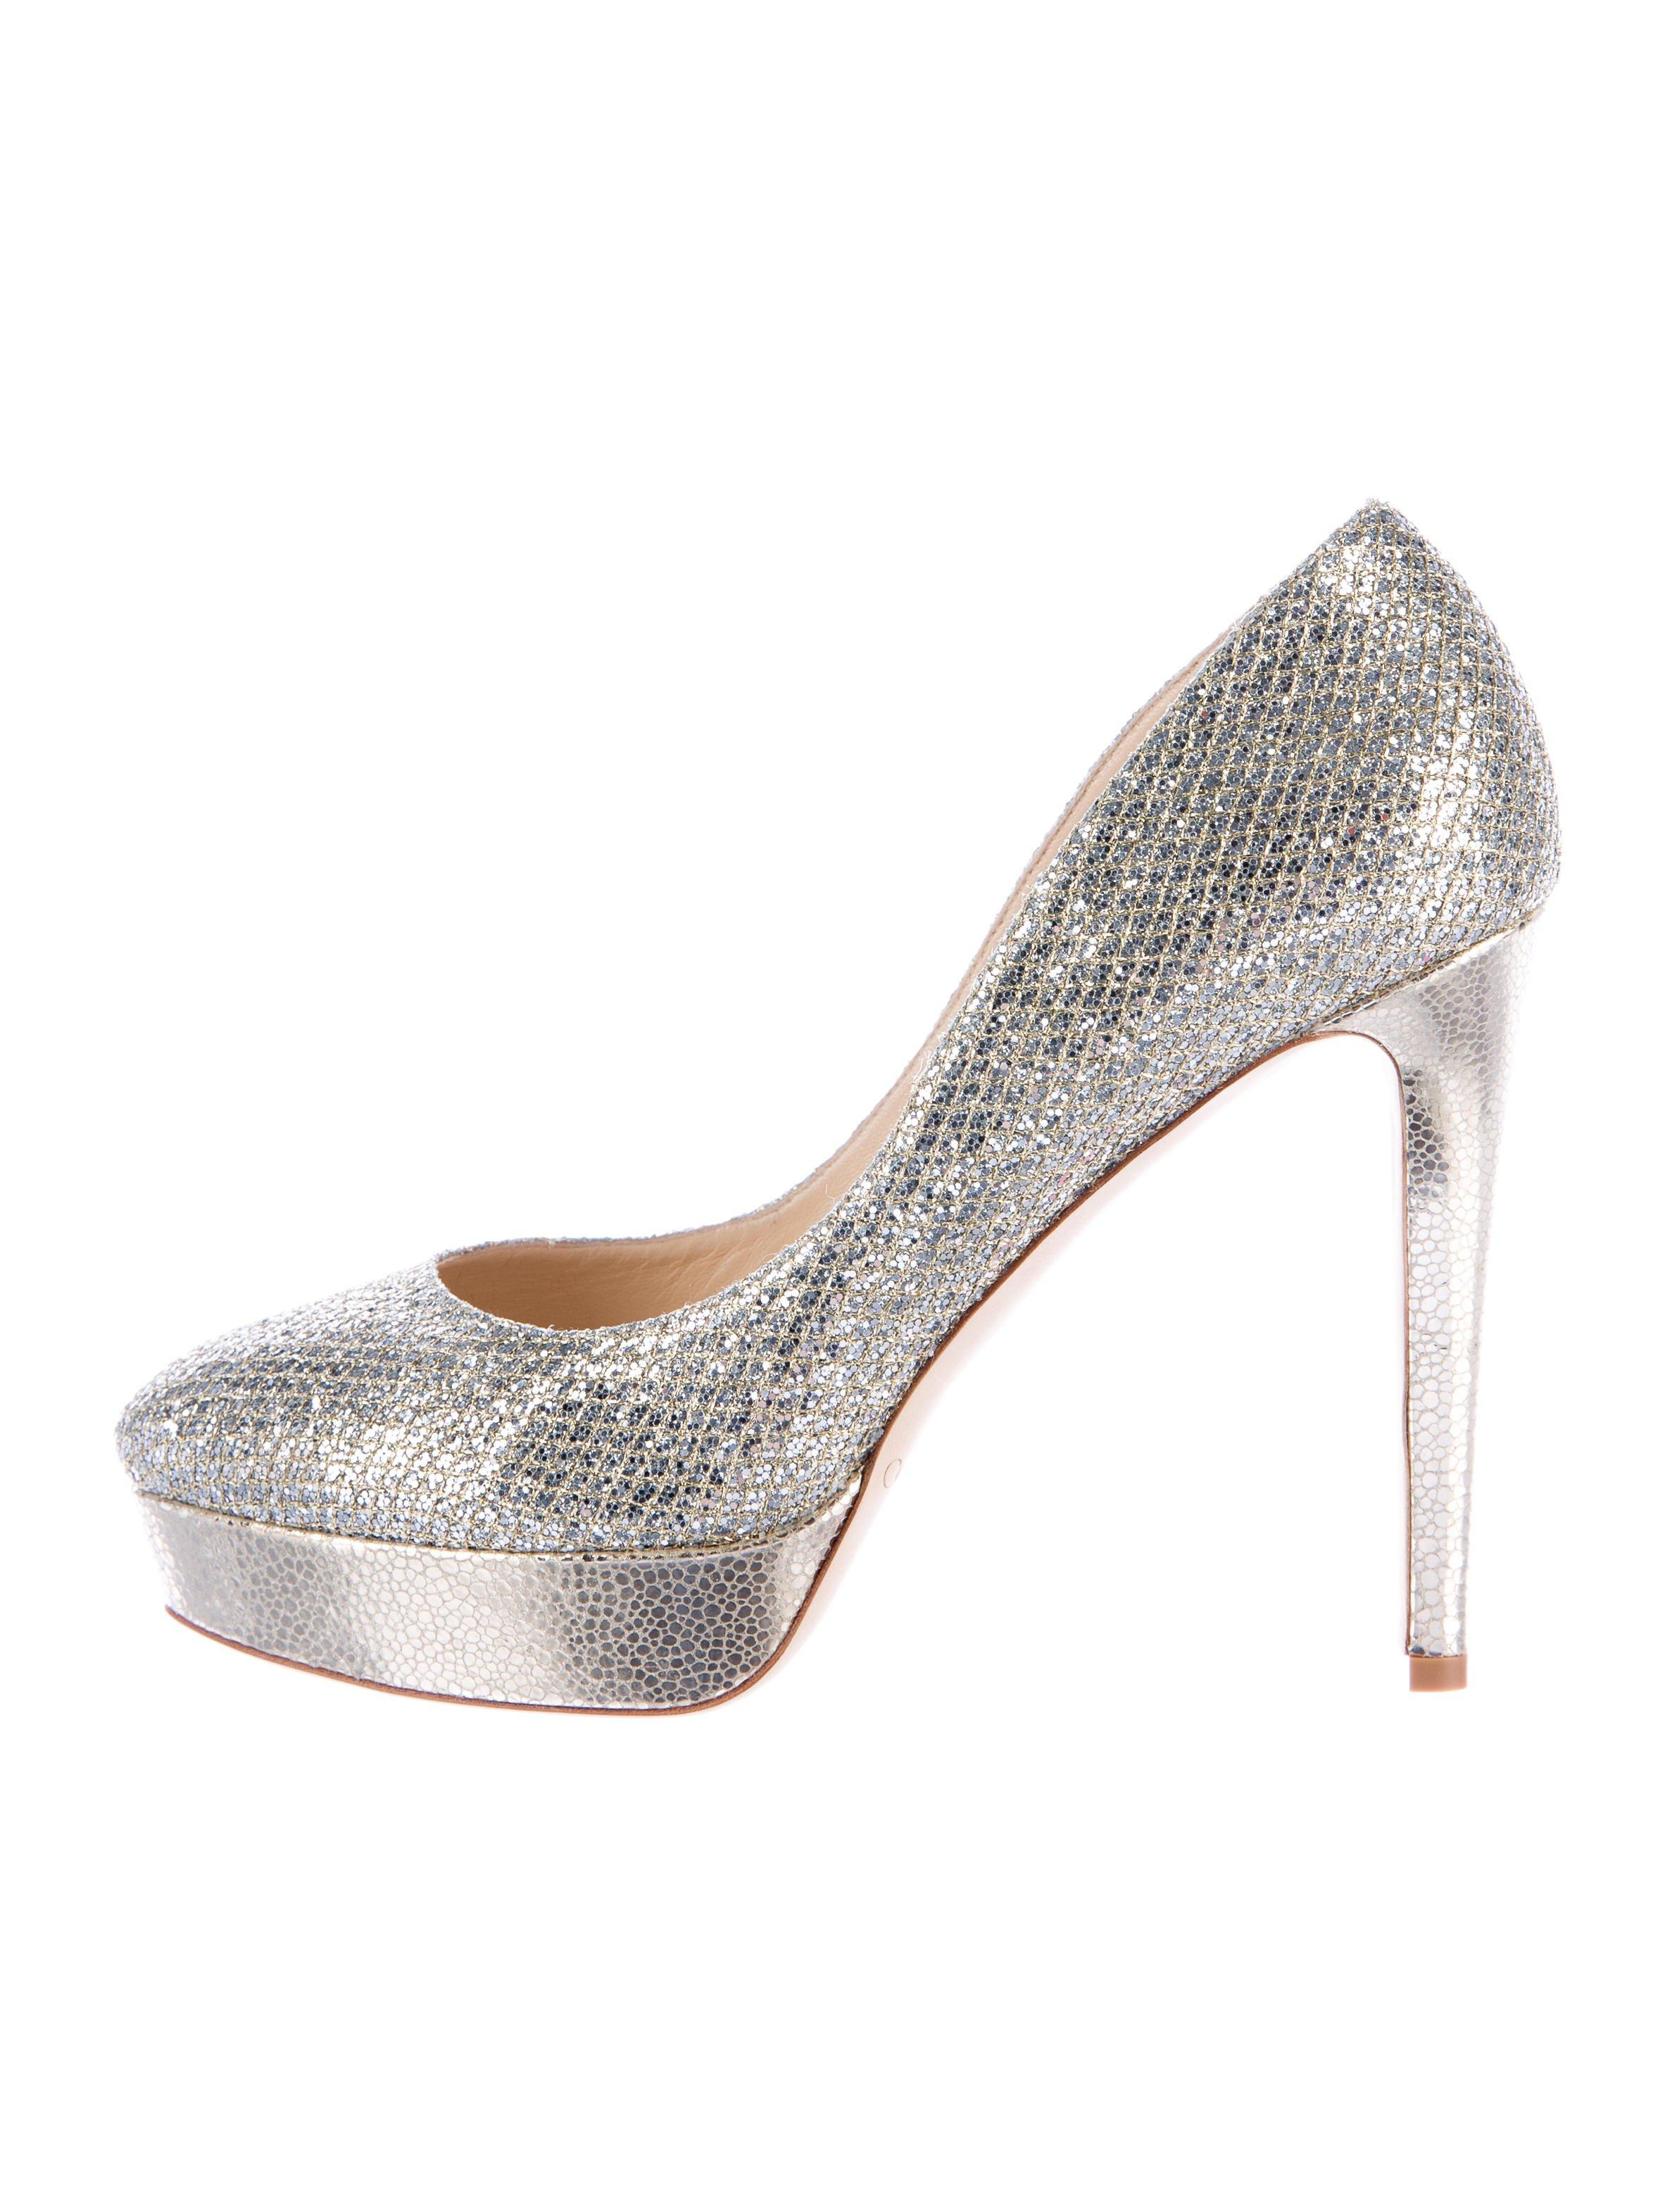 Jimmy Choo Silver Alex Pumps Size US 10 Regular (M, B)